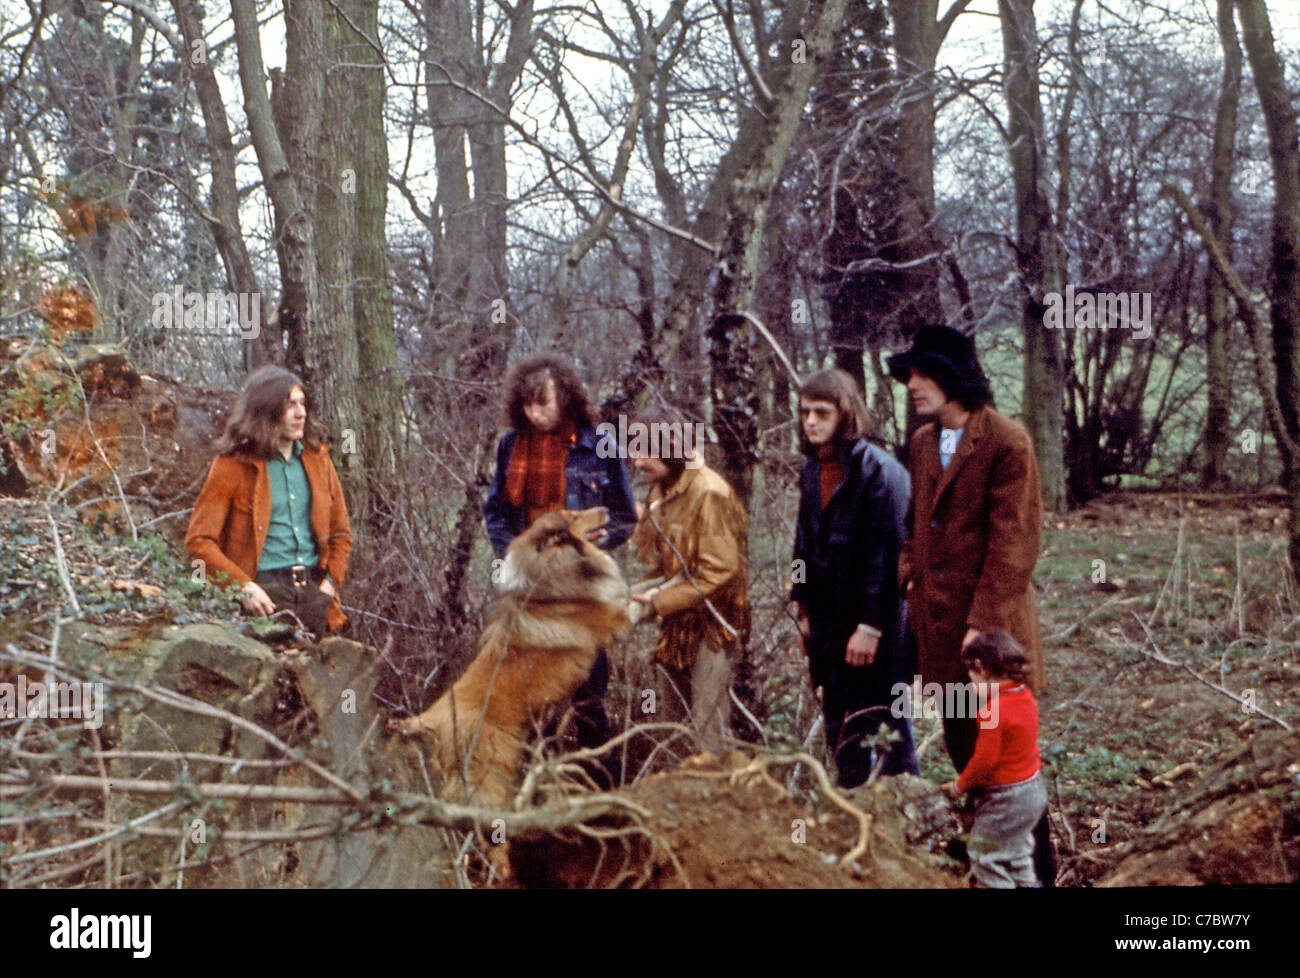 FAIRPORT CONVENTION UK folk rock group about 1976 - Stock Image